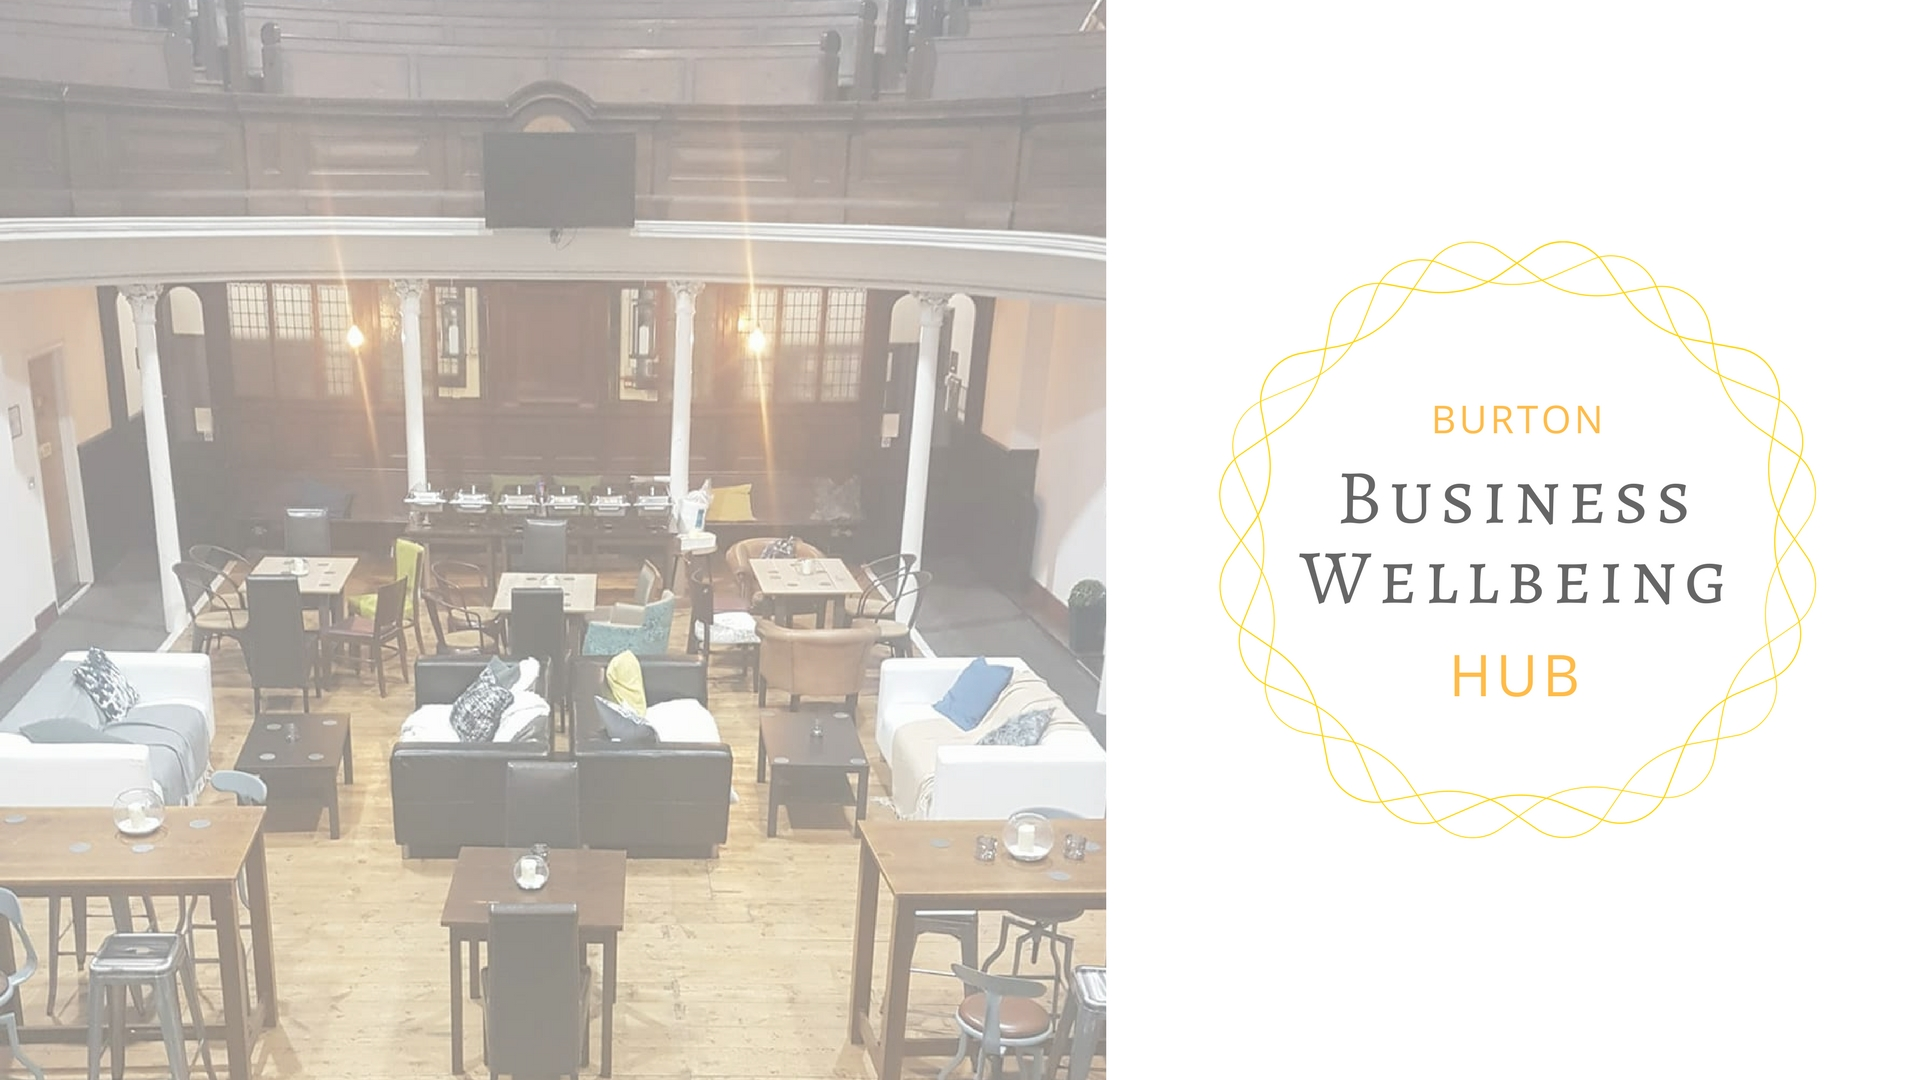 Burton Business Wellbeing Hub